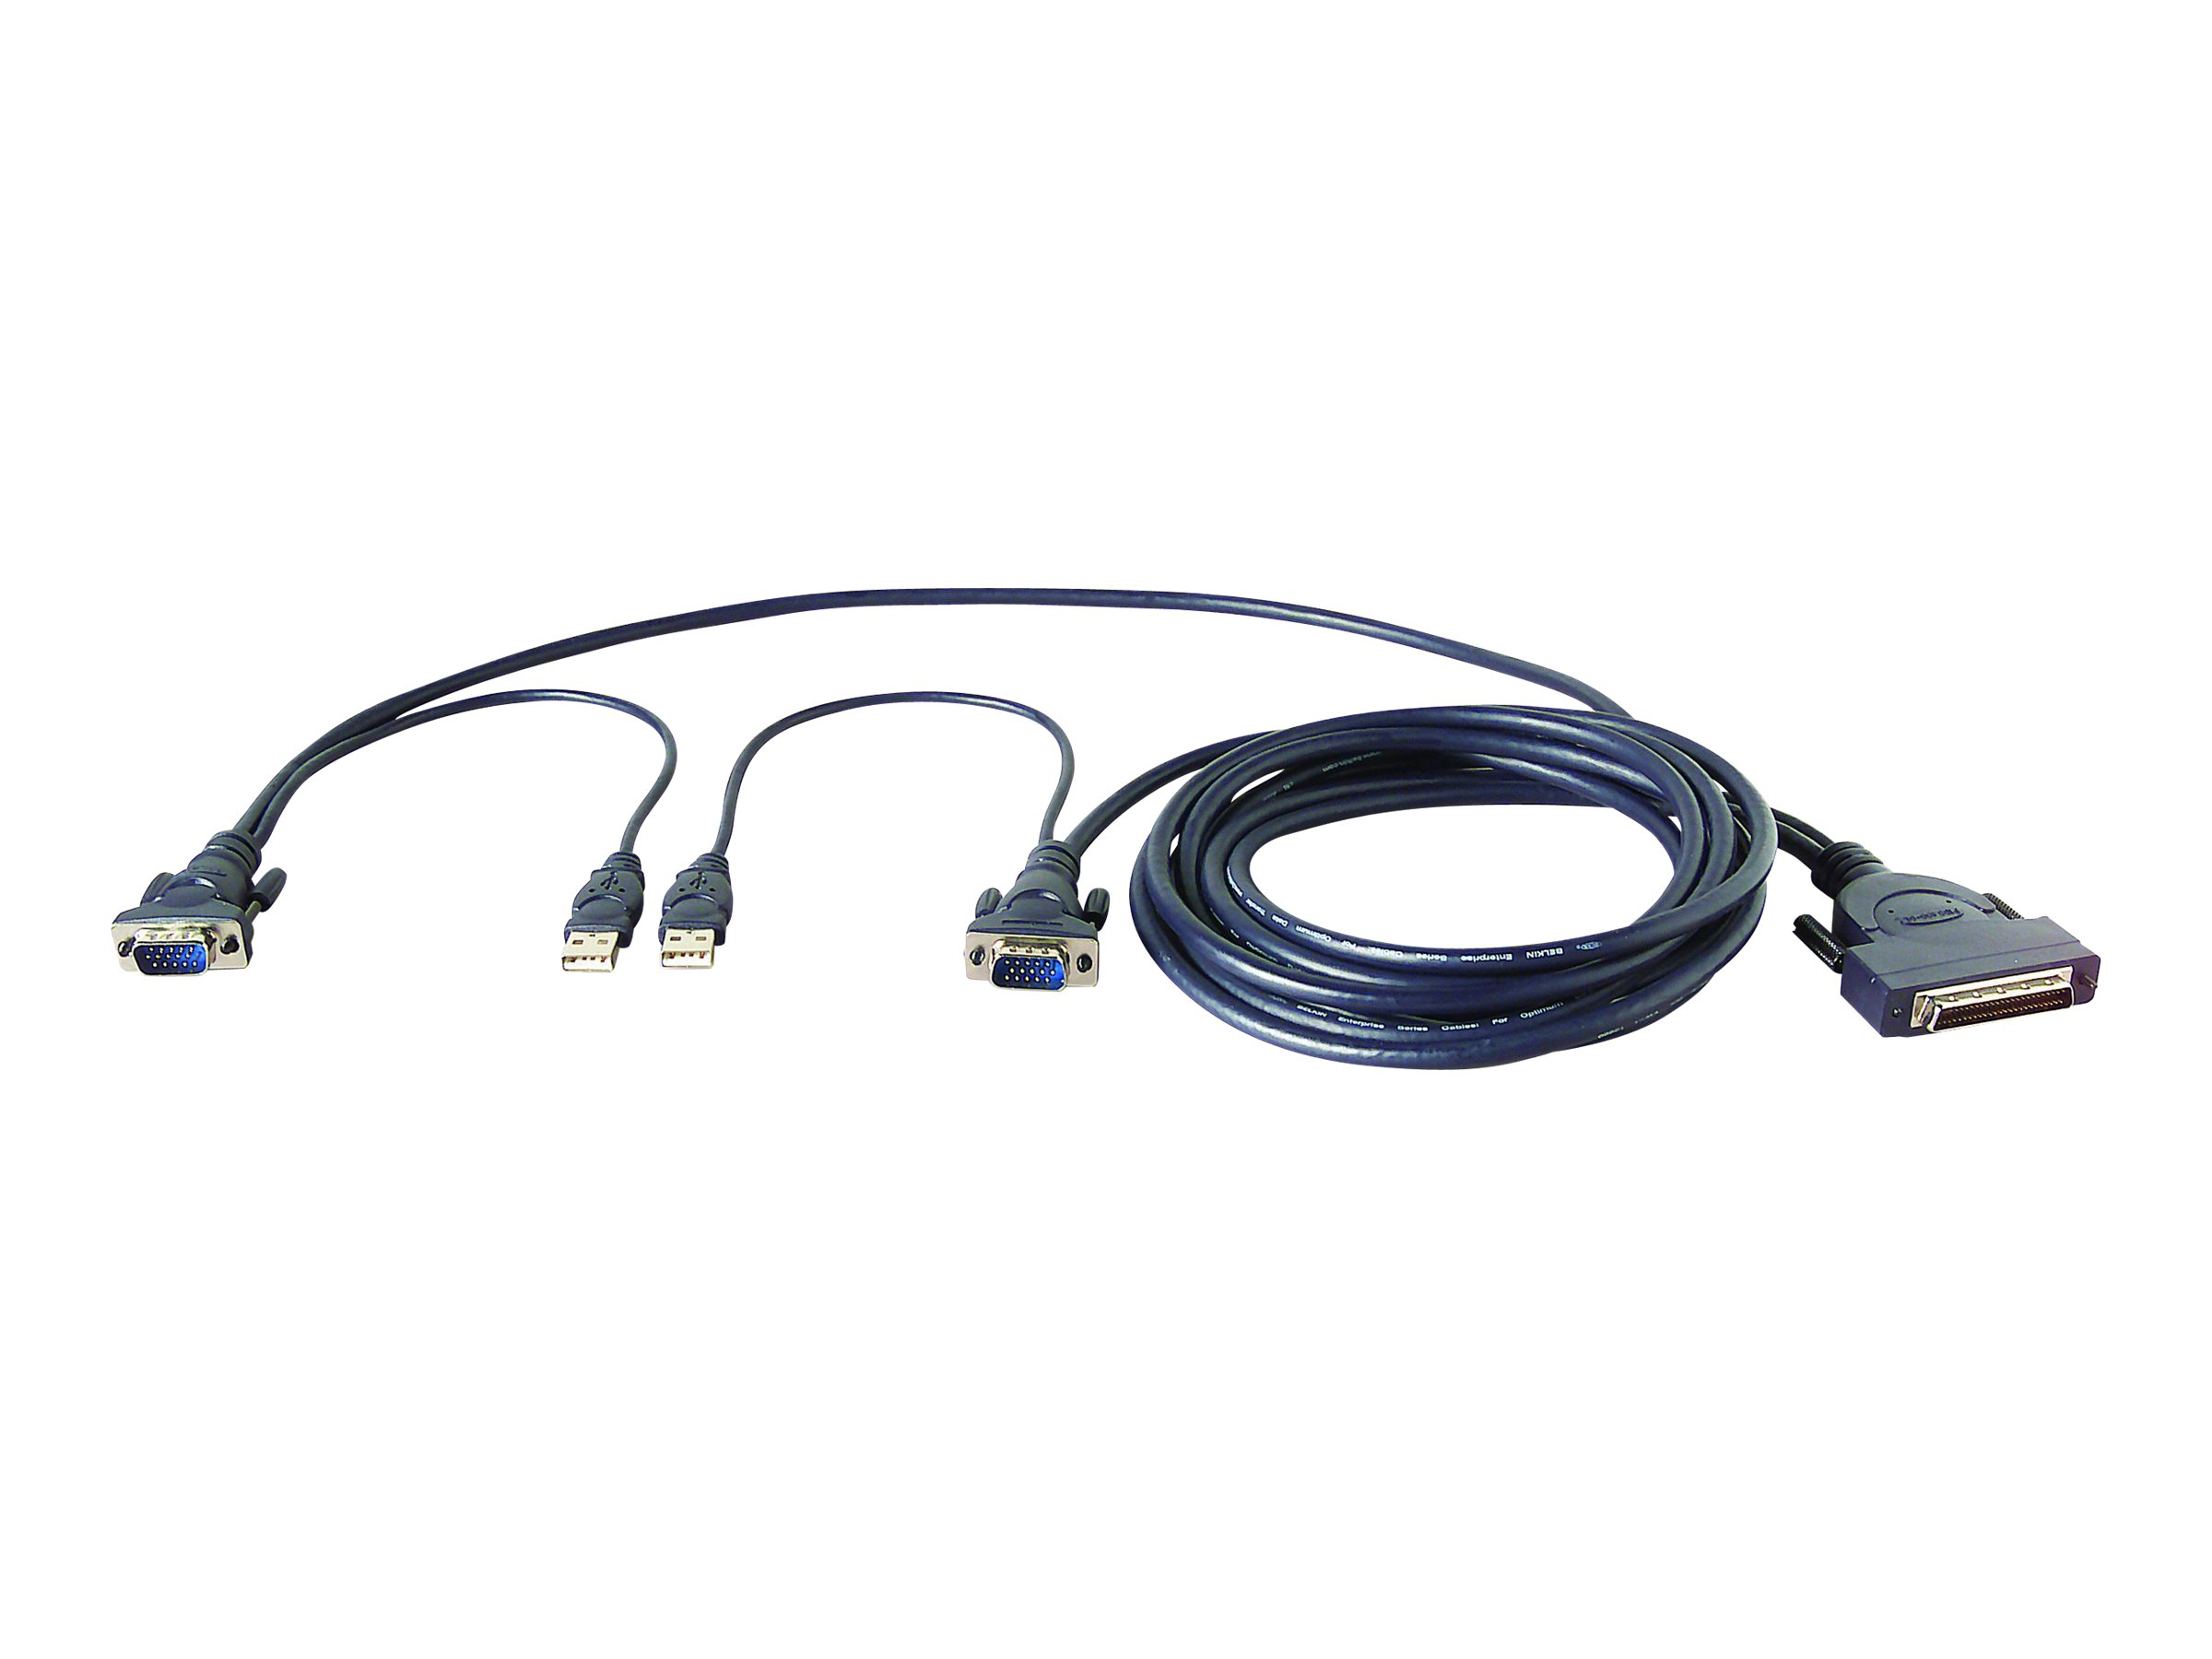 Belkin OmniView Dual Port Cable, USB - keyboard / video / mouse (KVM) cable - 1.8 m - B2B